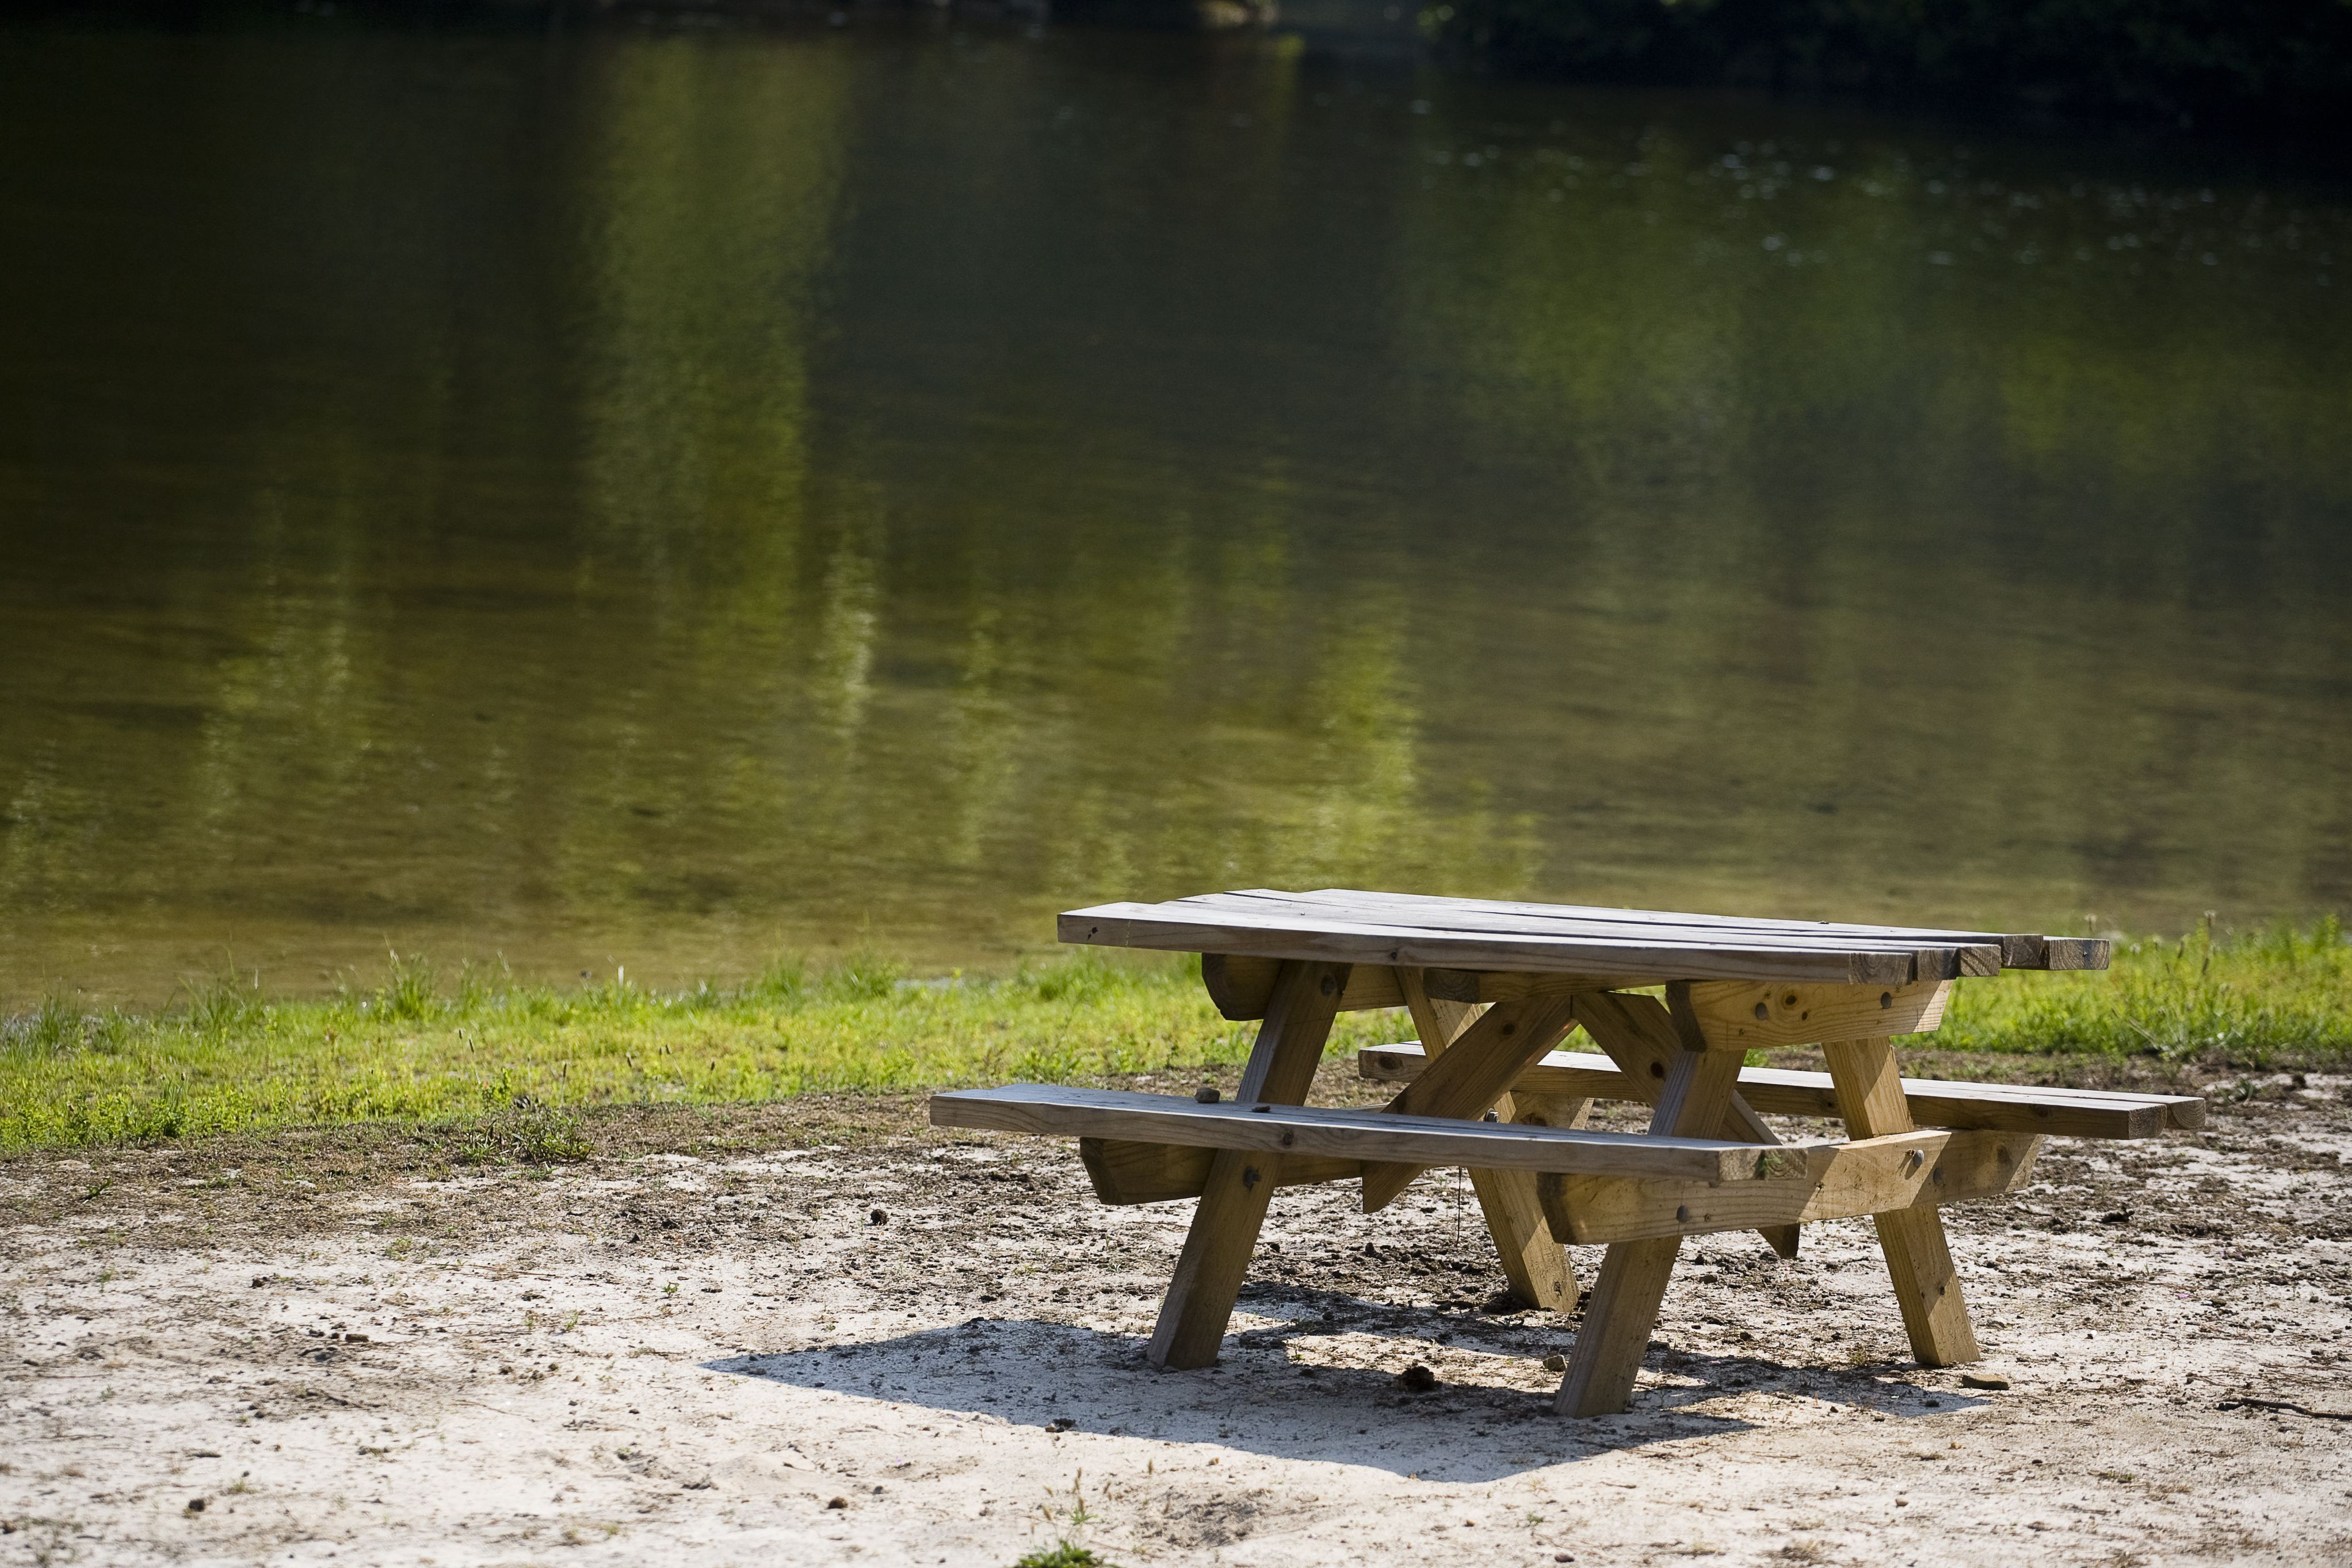 Free Picnic Table Plans In All Shapes And Sizes - Picnic table supplies